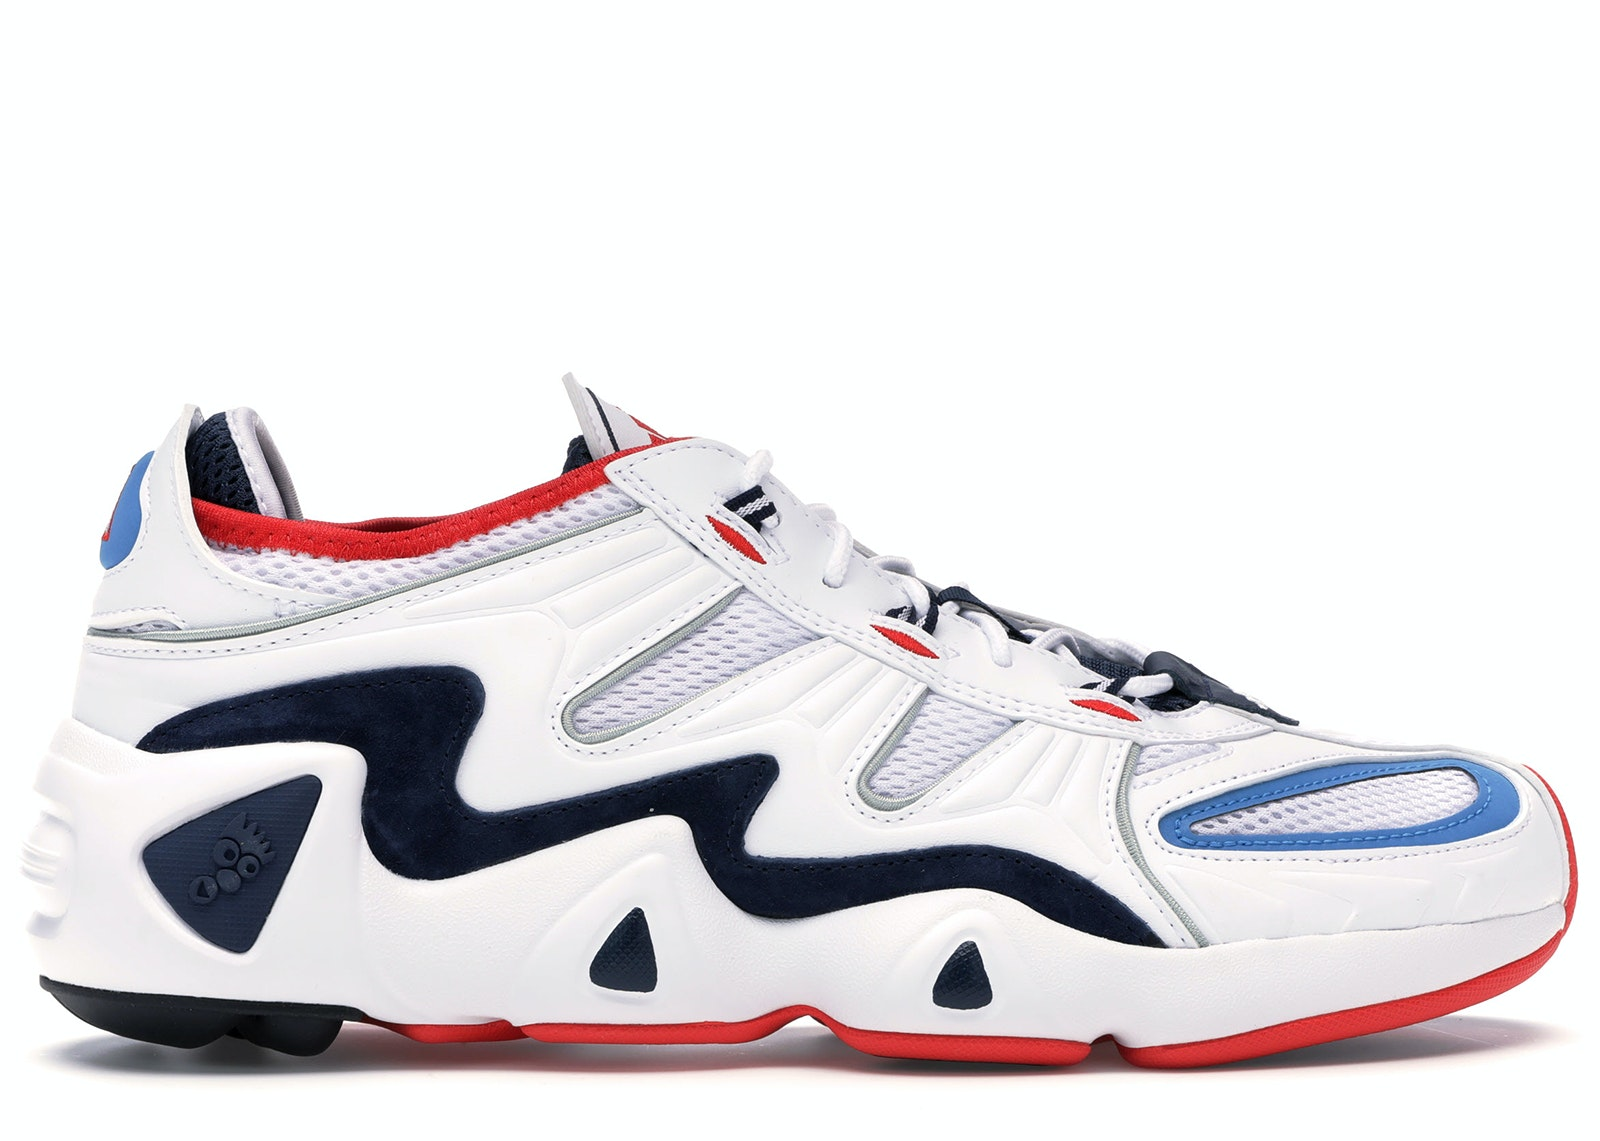 adidas FYW S-97 White Navy Red